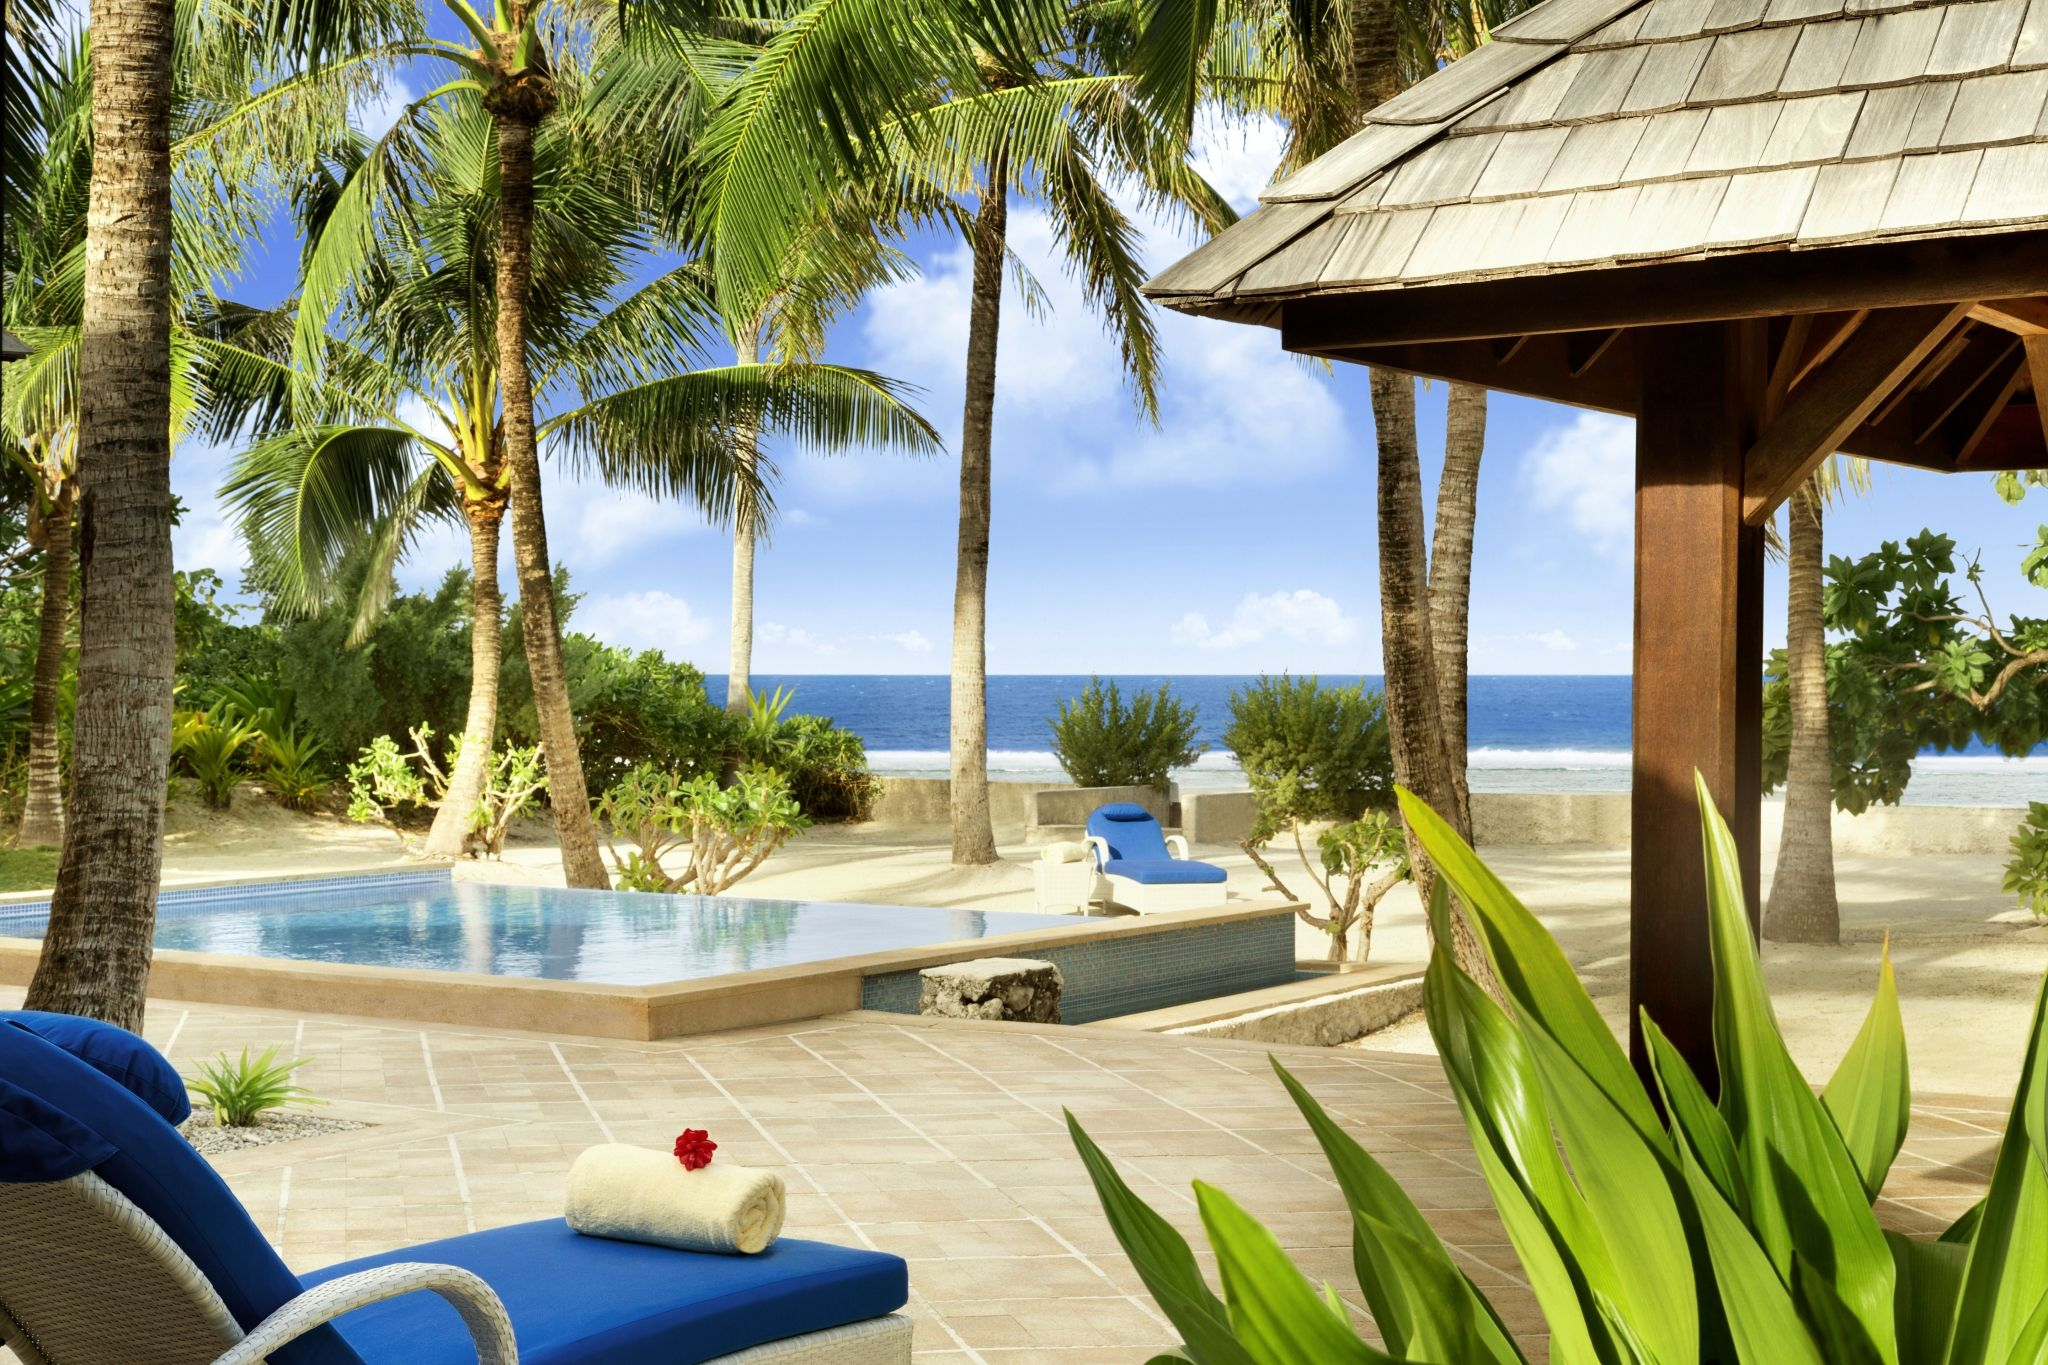 The St. Regis Bora Bora Resort - Reefside Royal Garden 2-Bedroom Villa with Pool